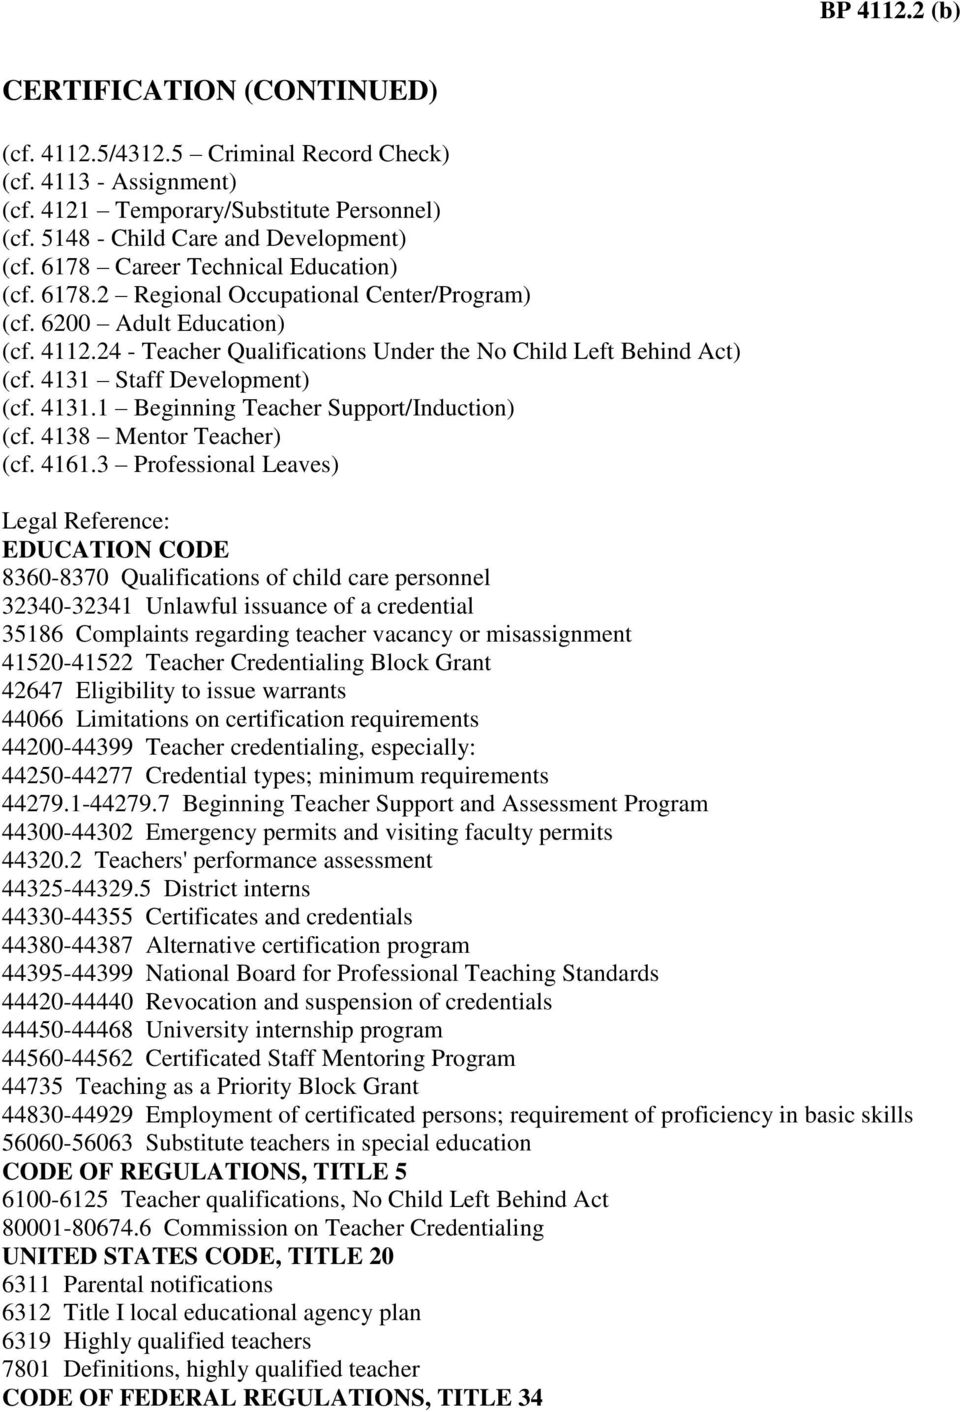 4131 Staff Development) (cf. 4131.1 Beginning Teacher Support/Induction) (cf. 4138 Mentor Teacher) (cf. 4161.